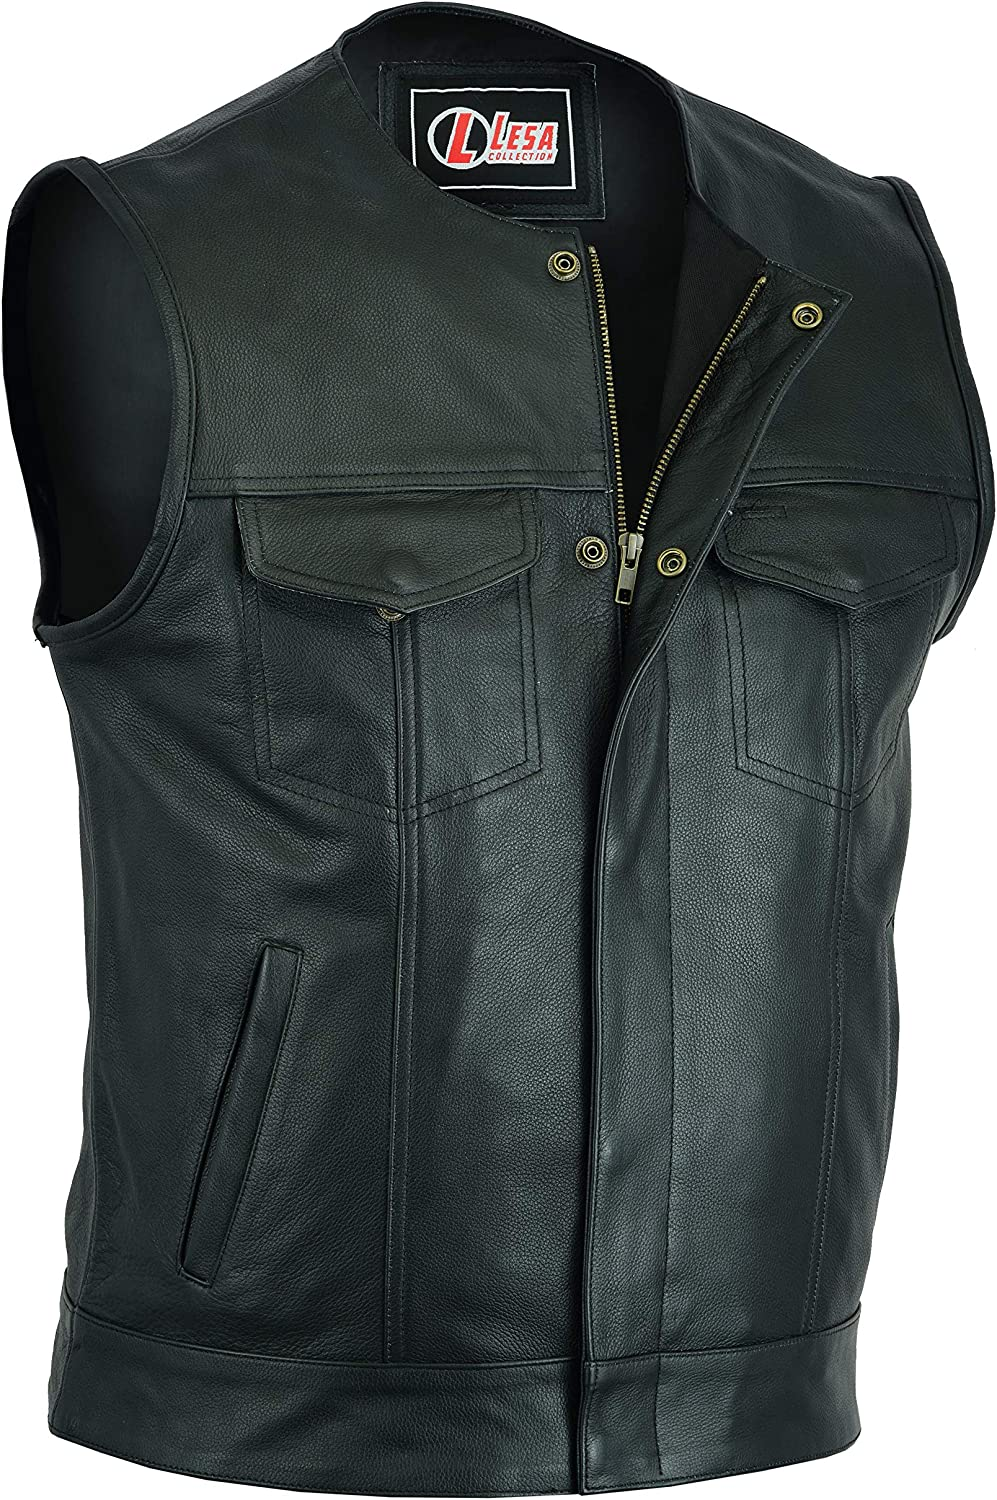 Sons of Anarchy LEATHER WAISTCOAT  Biker Vest Motorcycle MotorBike Leather